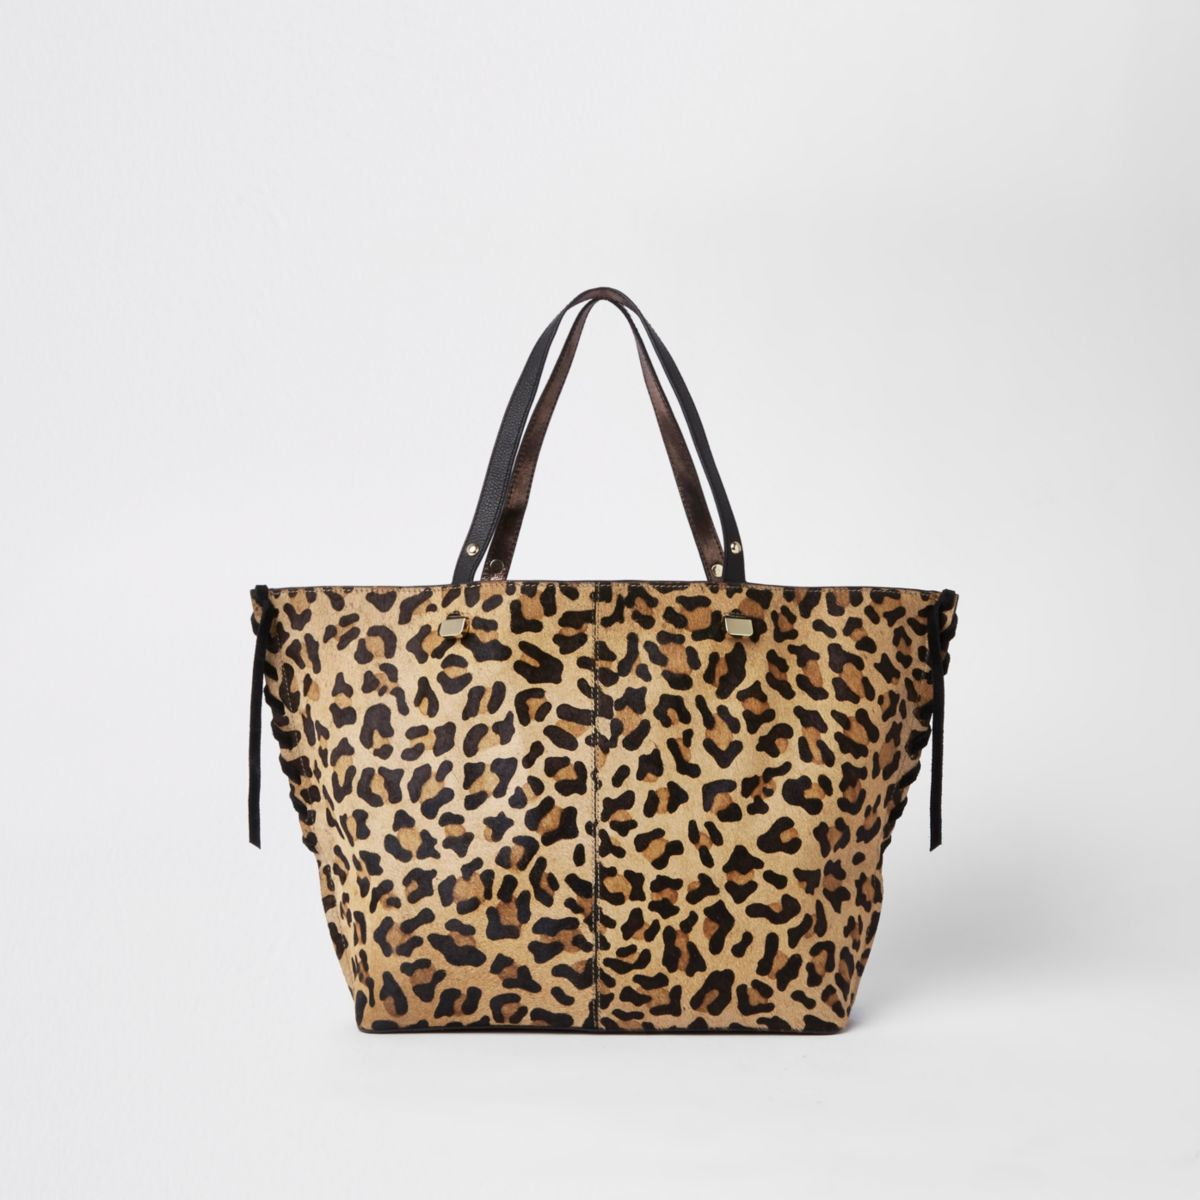 Brown leopard print leather shopper